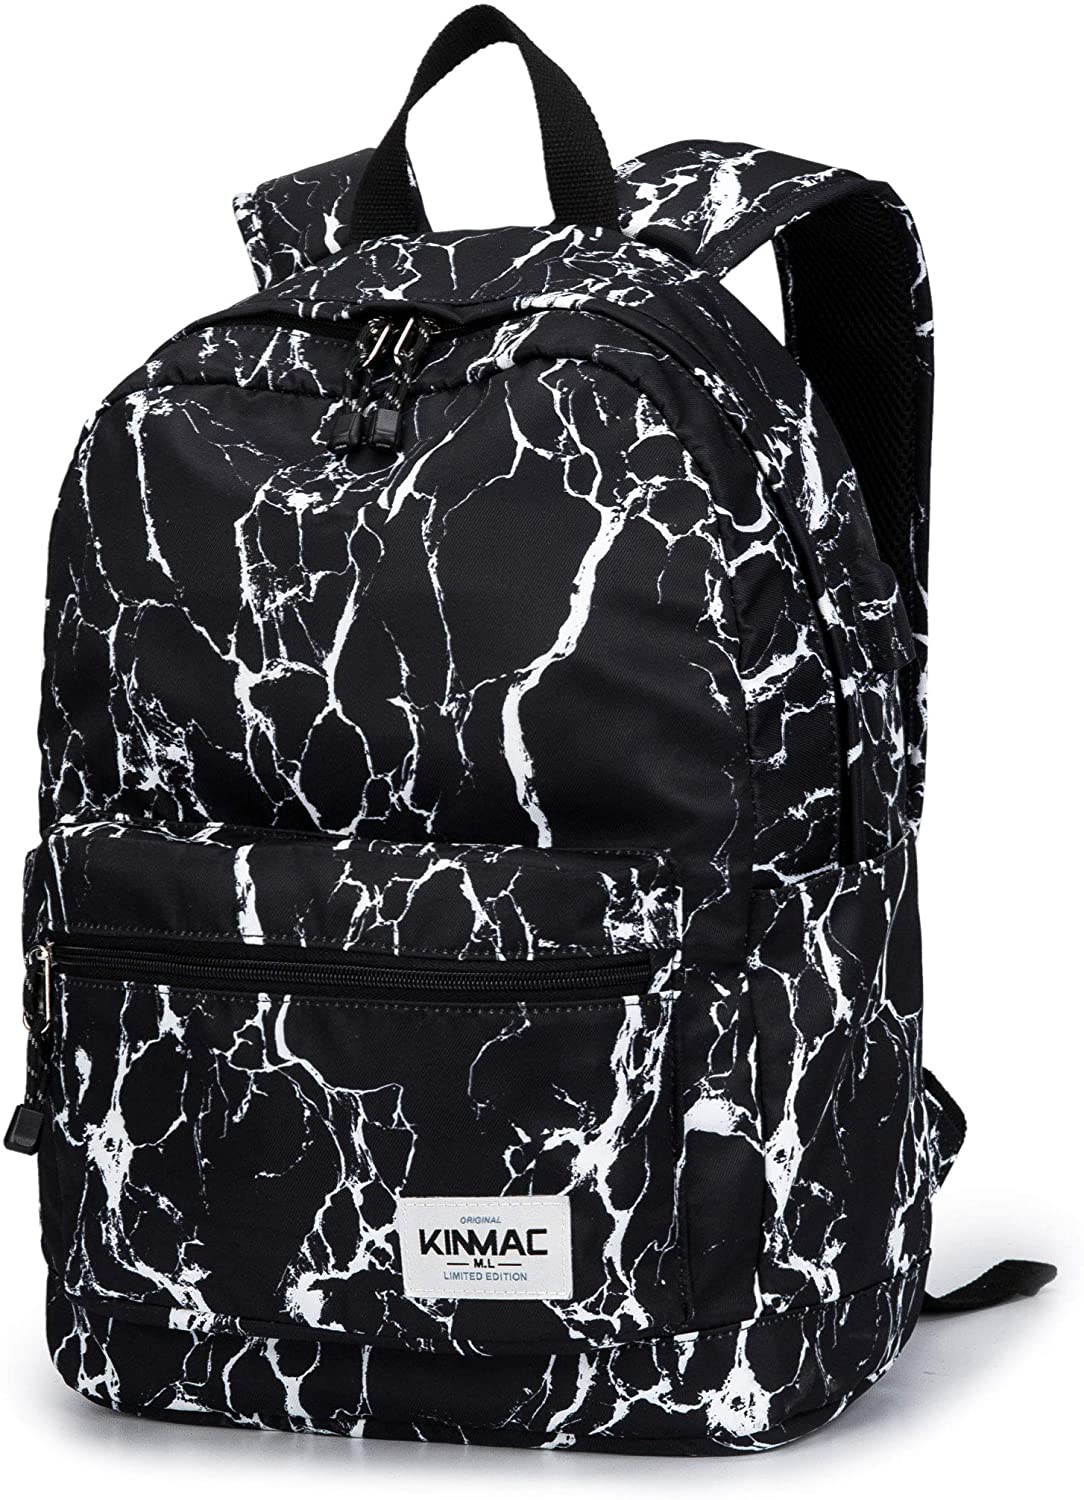 Kinmac Waterproof Laptop Travel Outdoor Backpack with USB Charging Port for 13 inch 14 inch and 15.6 inch Laptop (Black Marble)